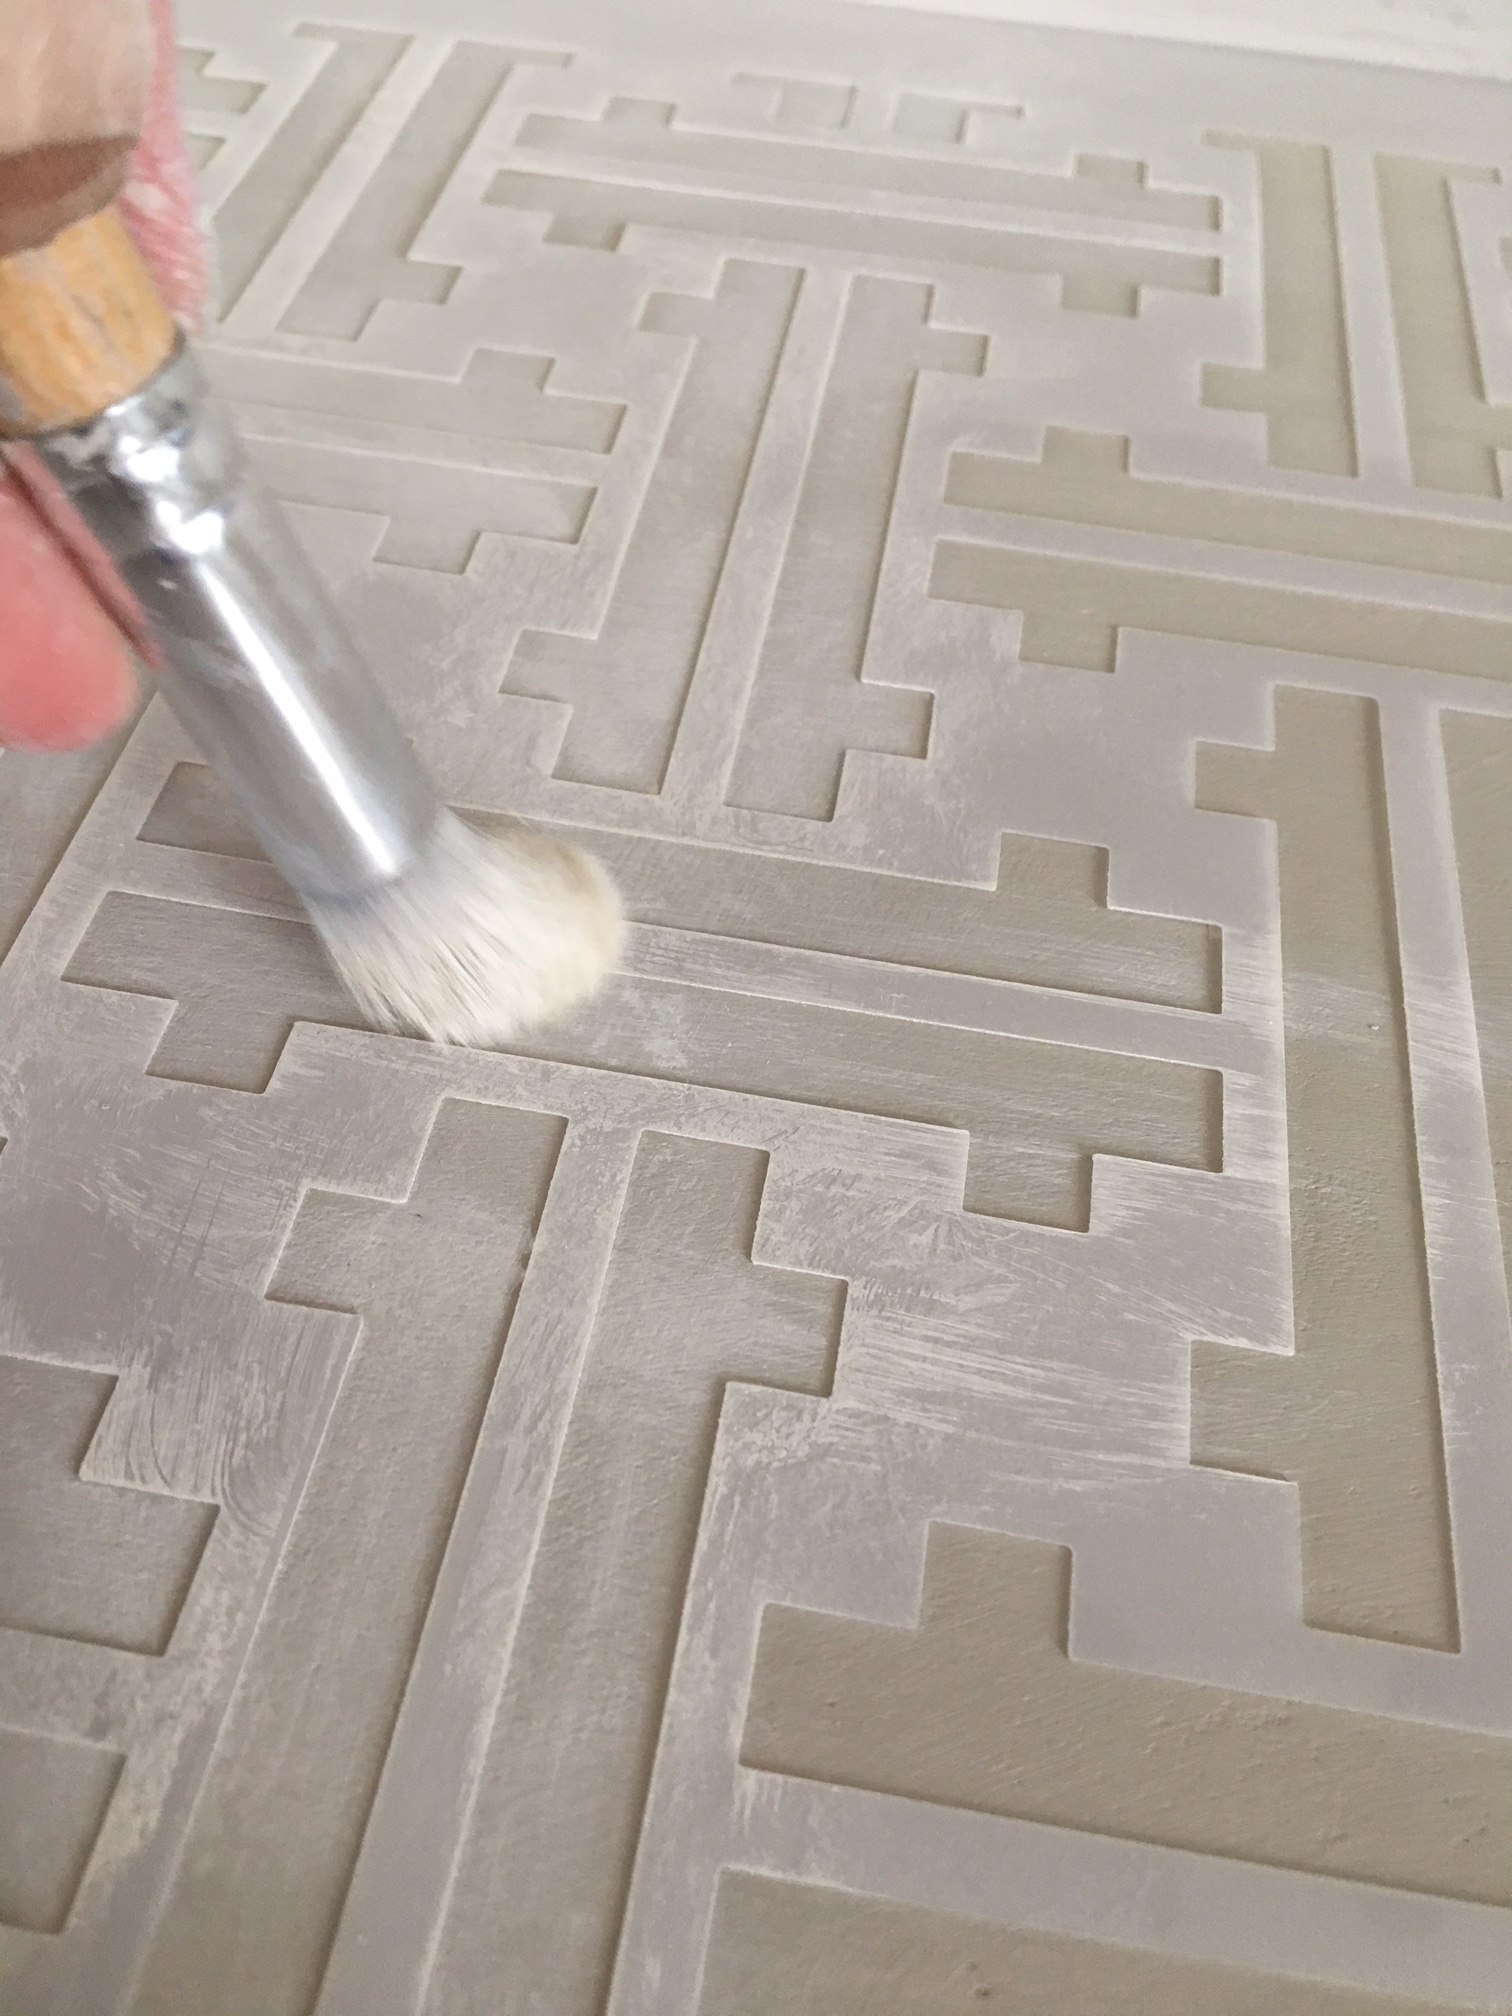 Paint the background in Putty and then use Raw Silk for the stenciled pattern. Add the second color lightly for a soft, distressed look....